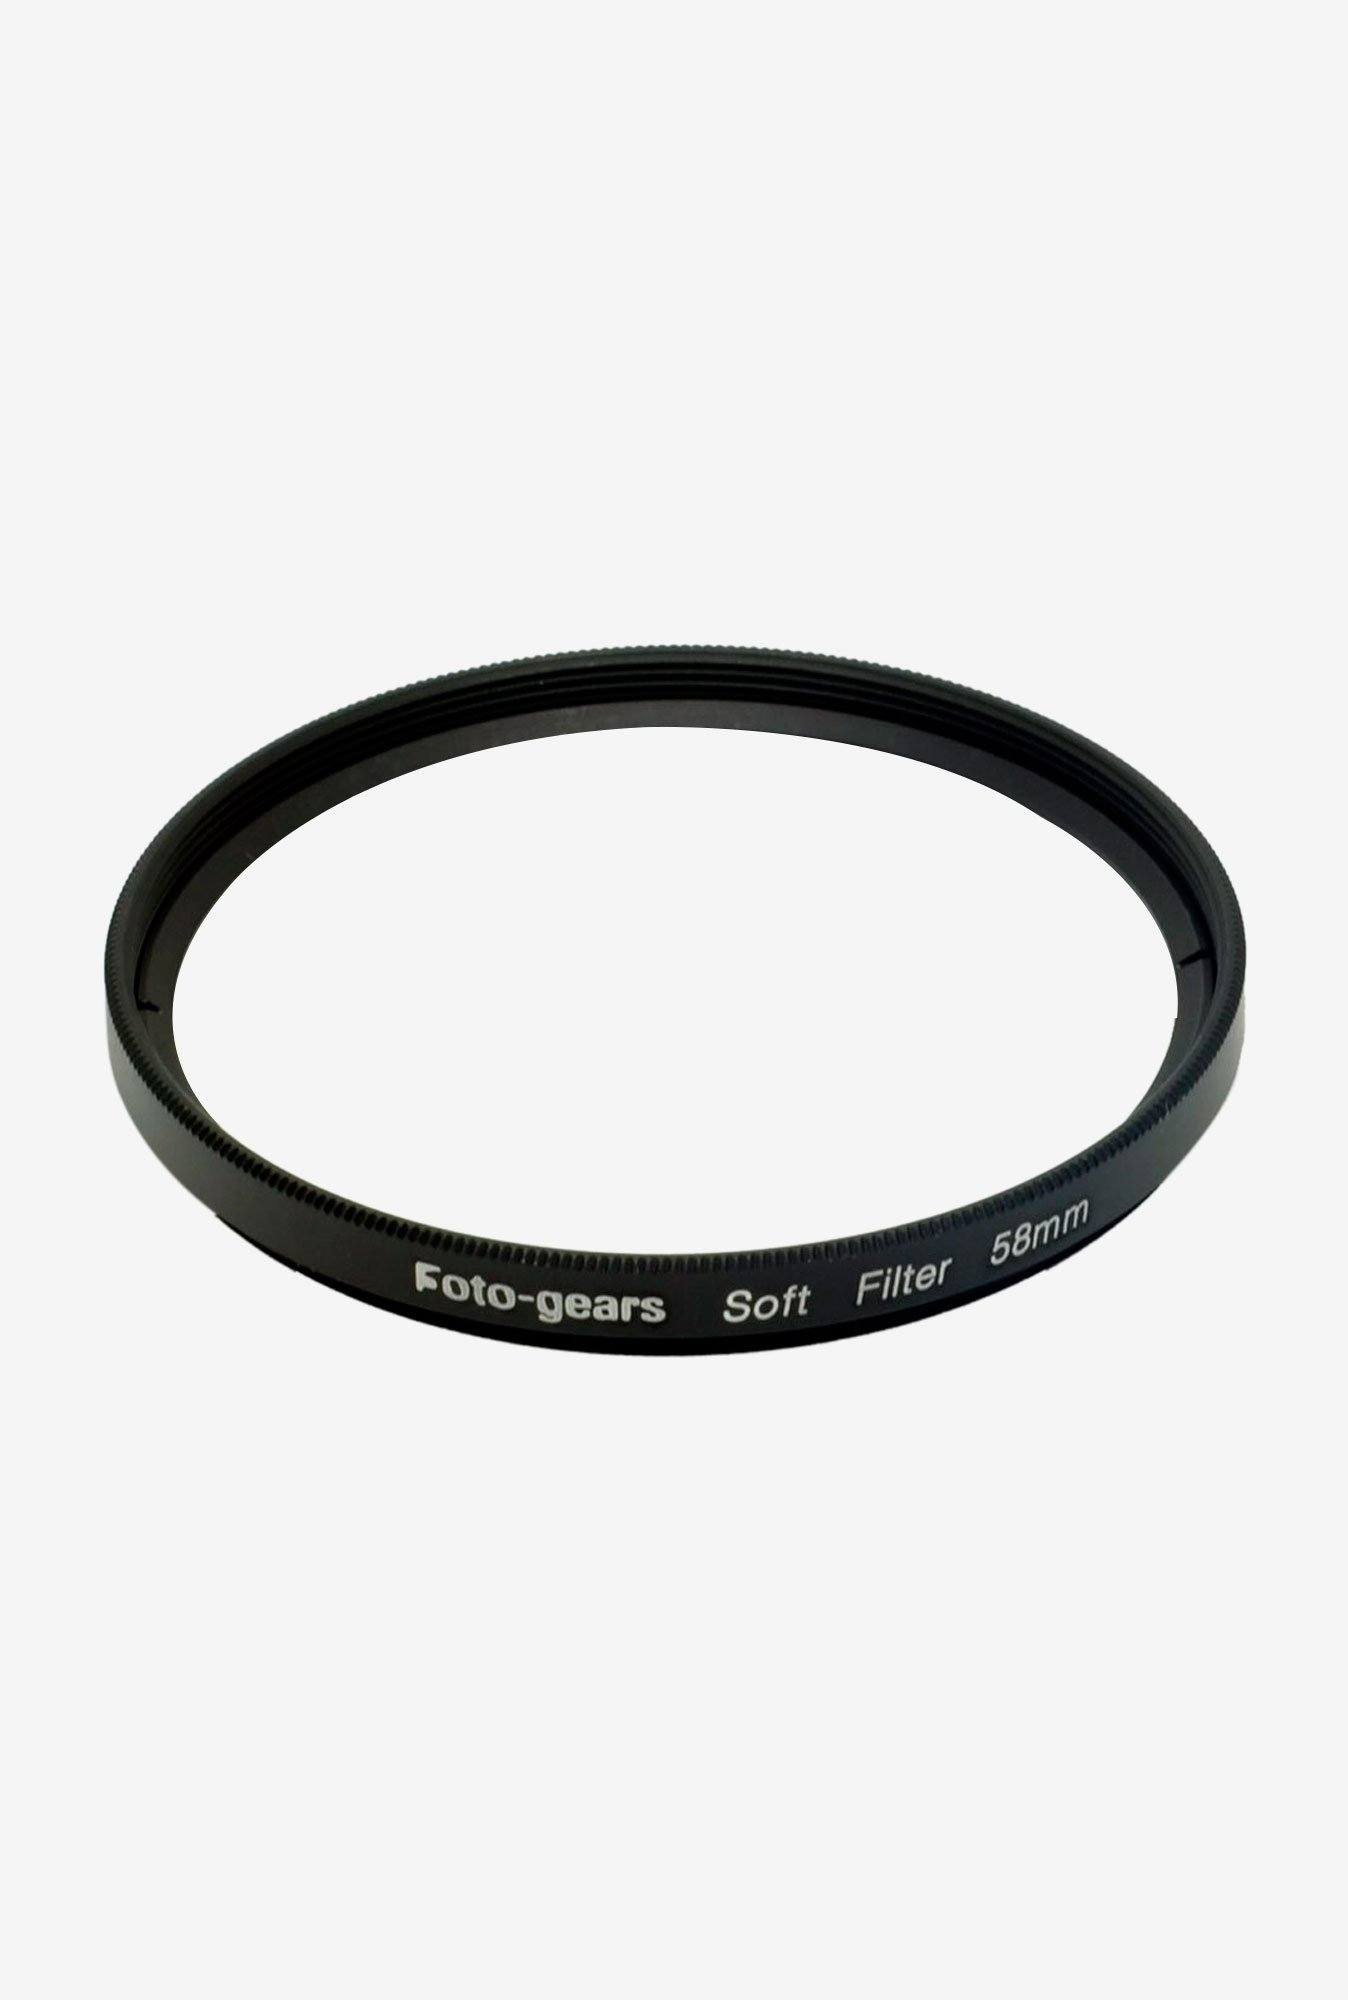 Mesenltd 58mm soft Lens Filter Black